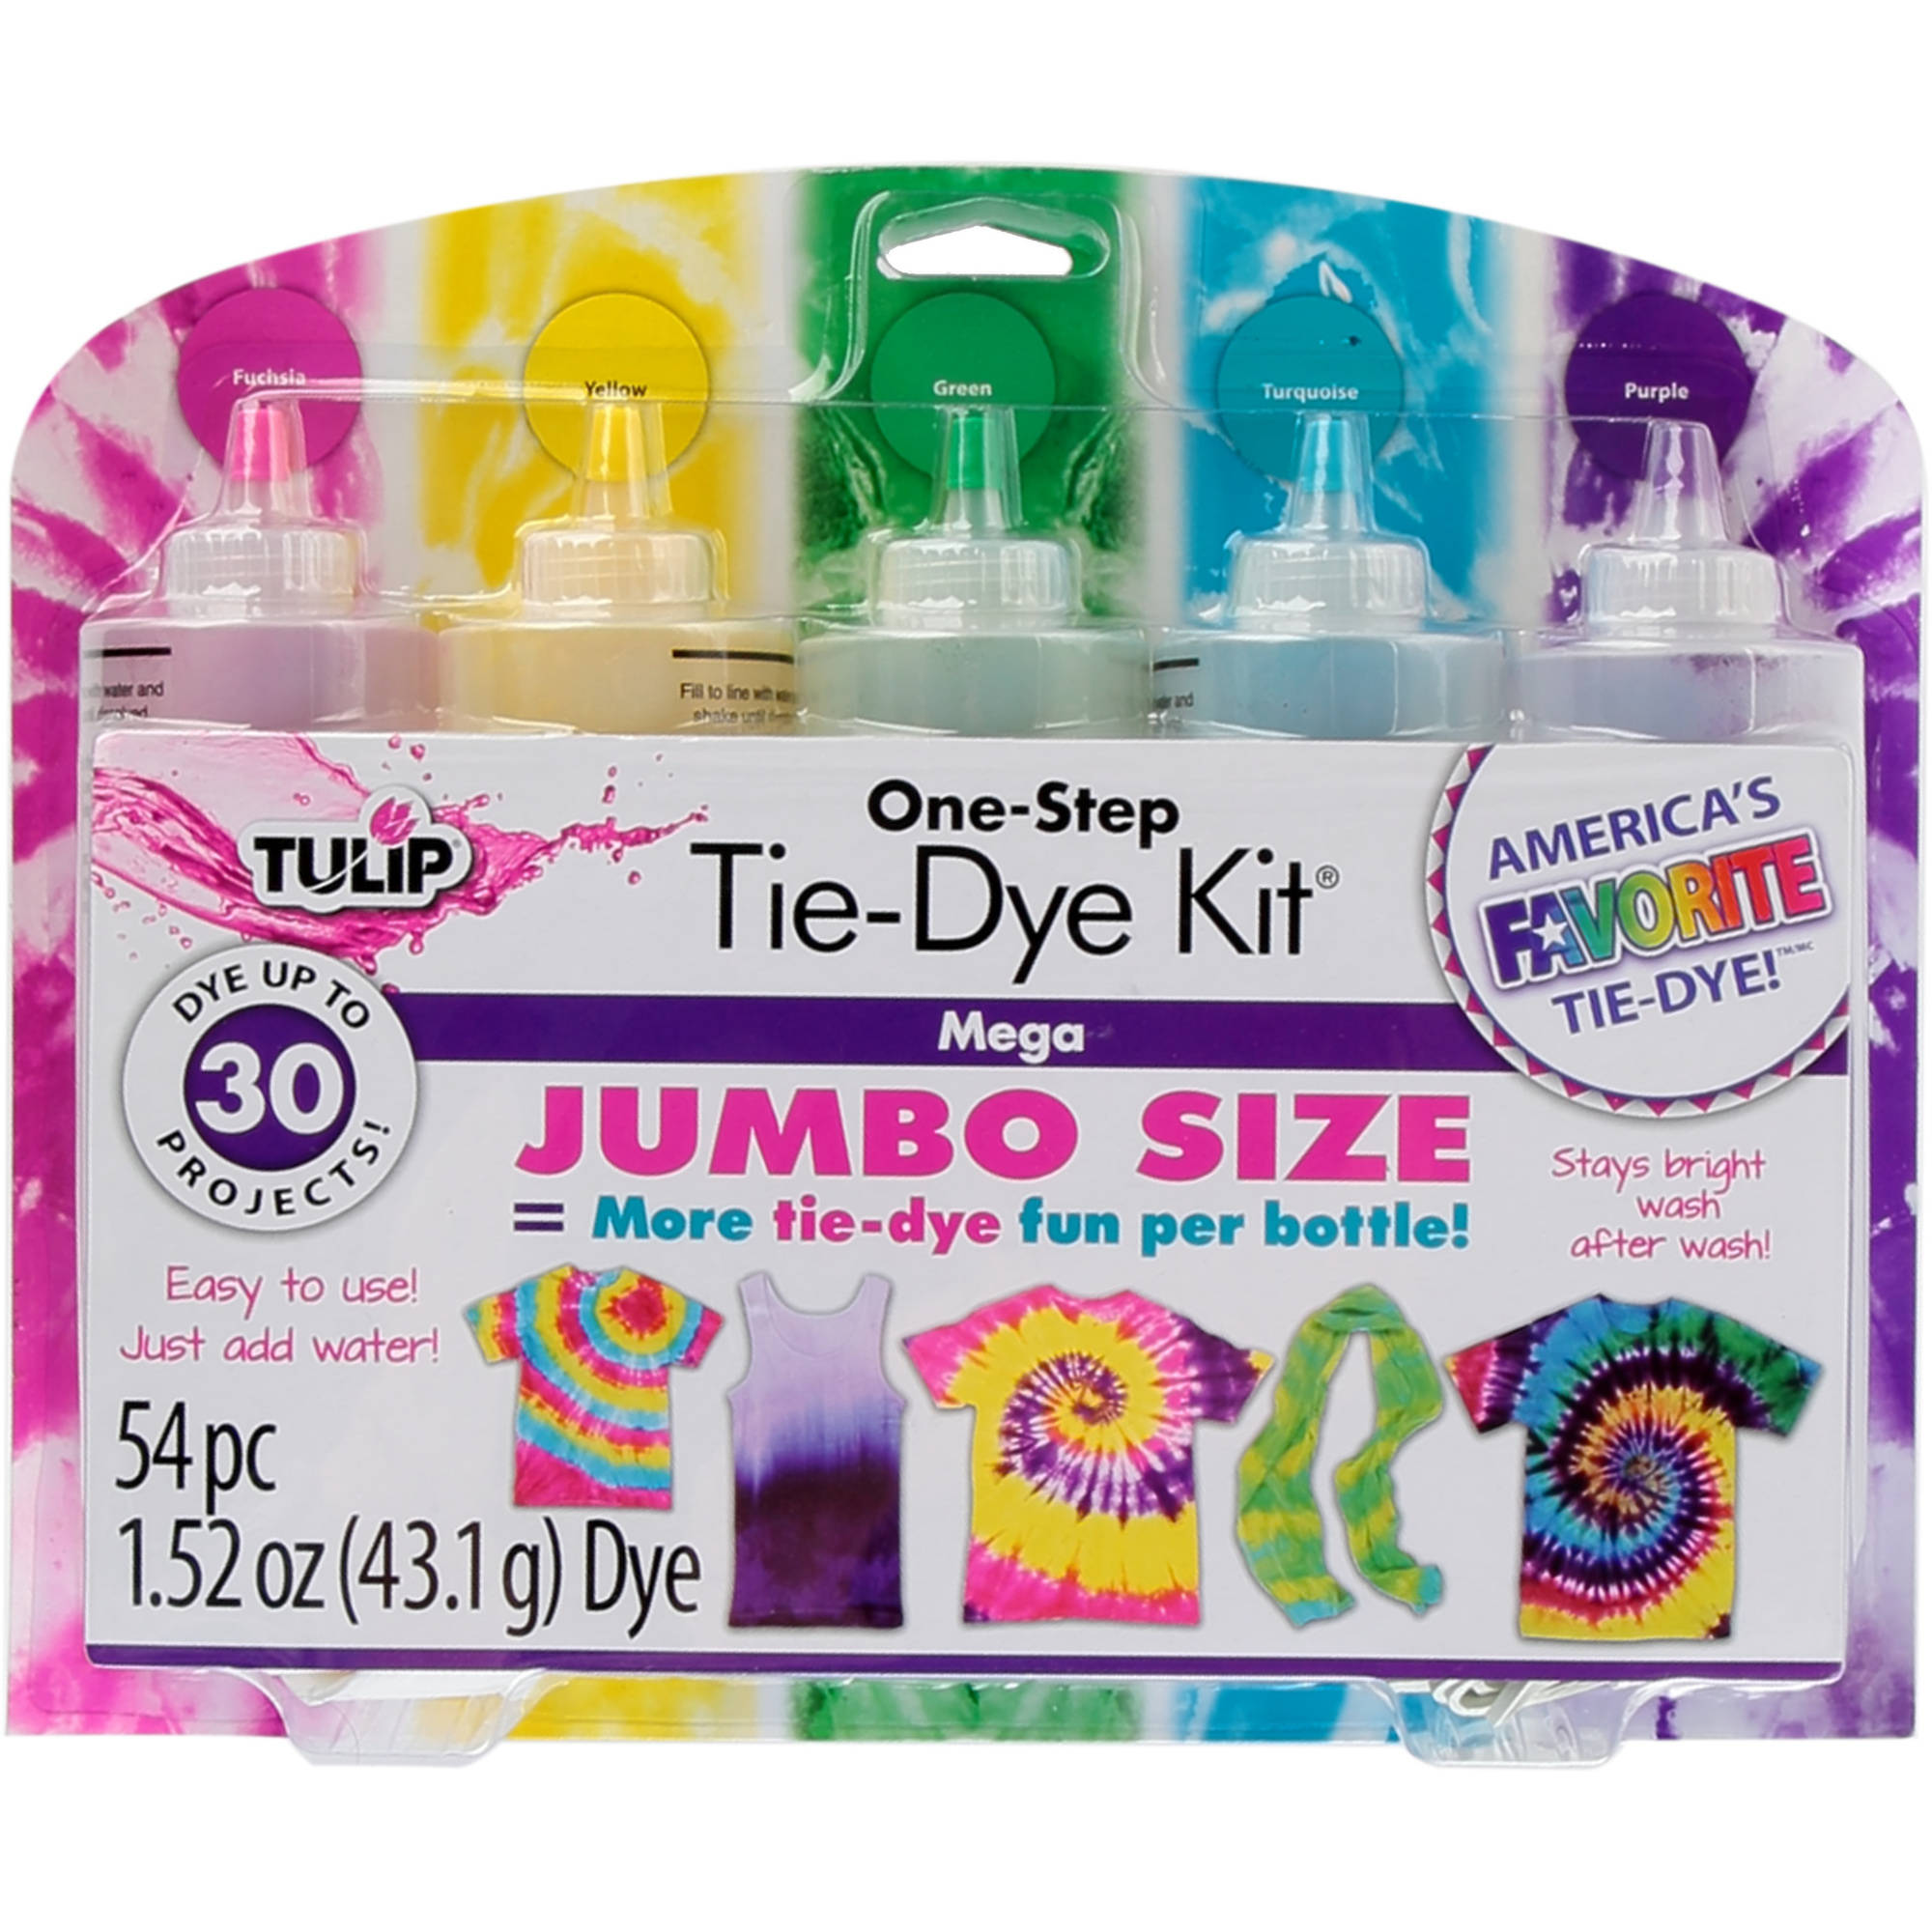 Tulip One-Step Tie Dye Kit, Mega